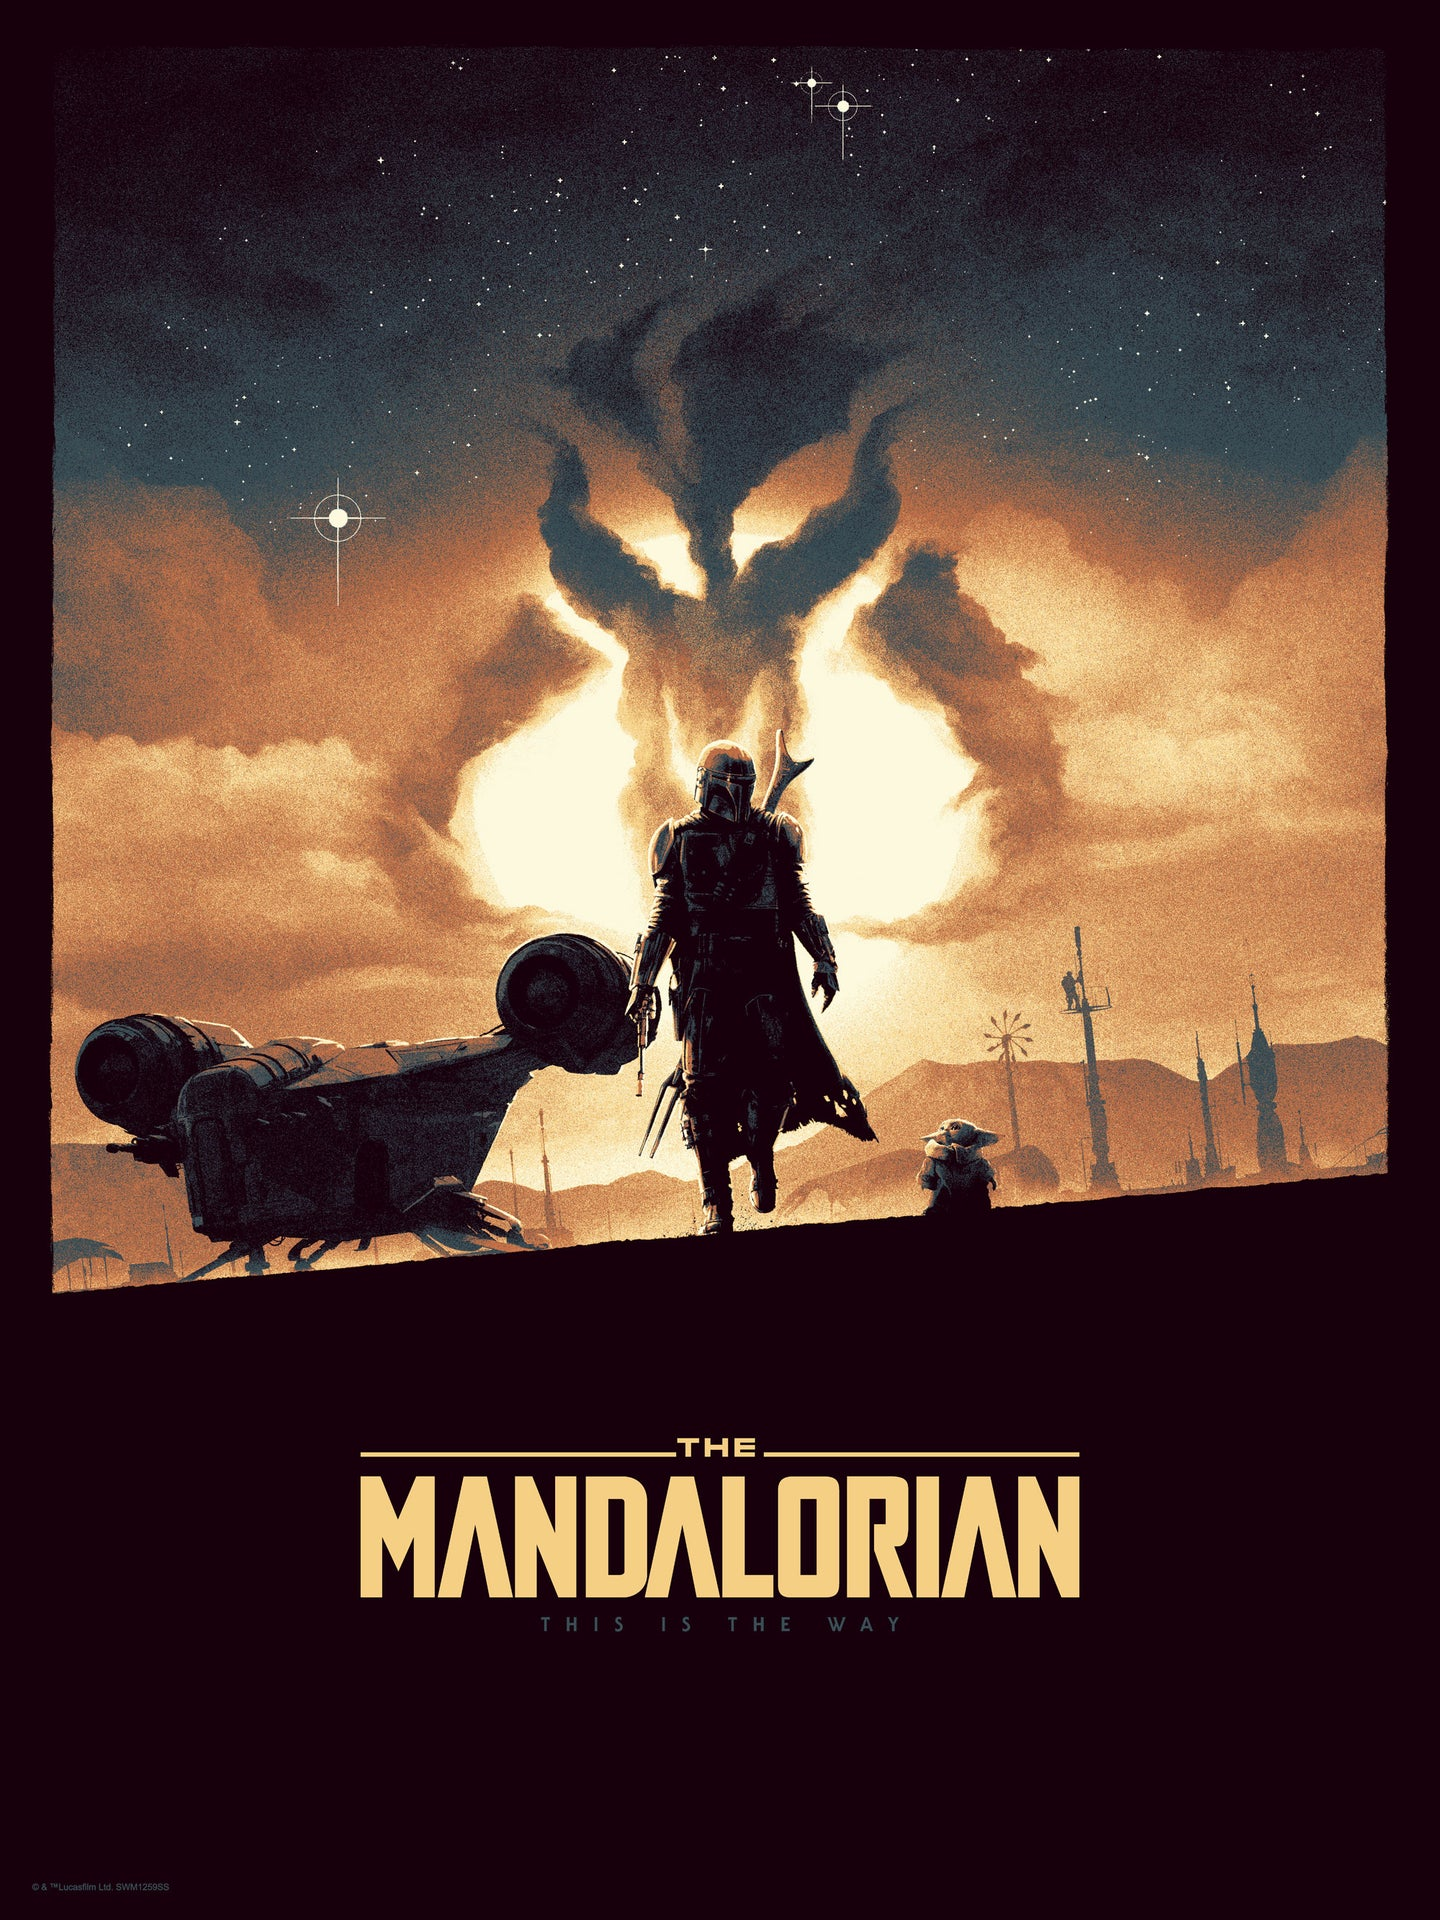 Mandolorian - This is the Way